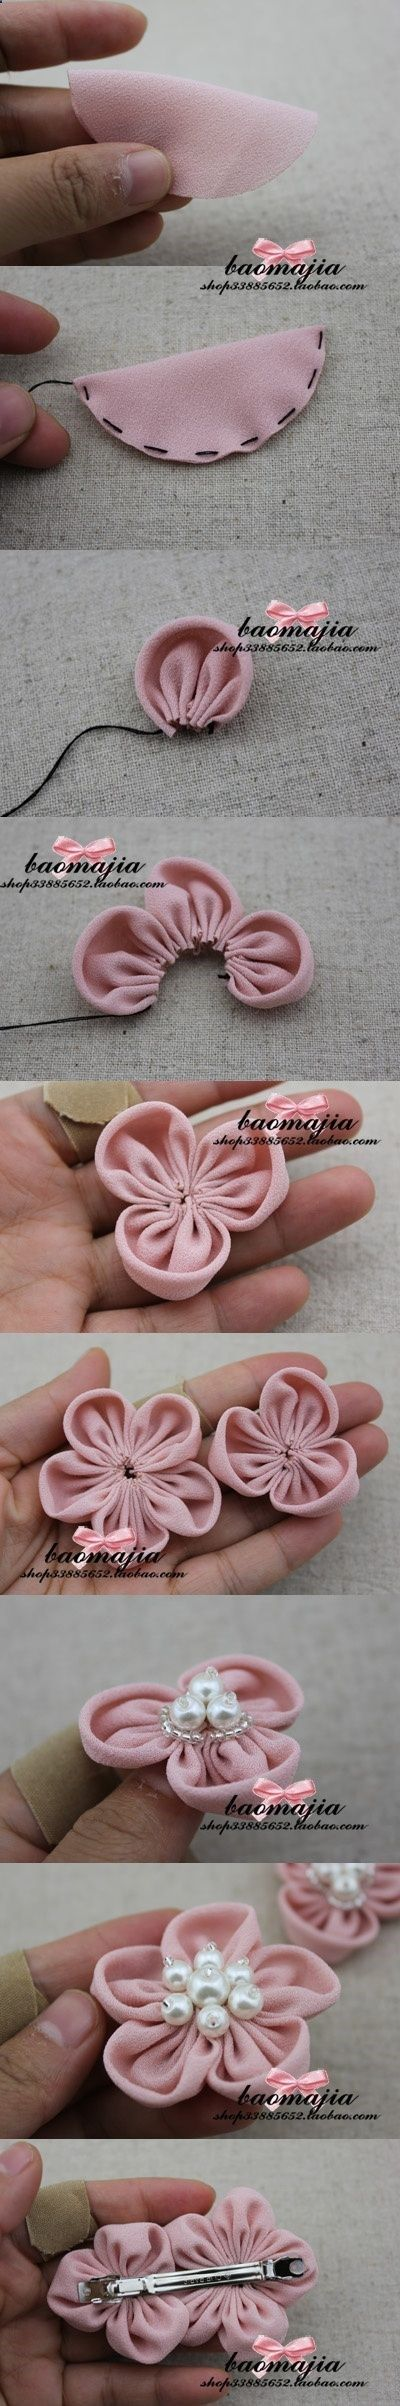 Cute and easy DIY fabric flower pins. these would be nice purse decorations.